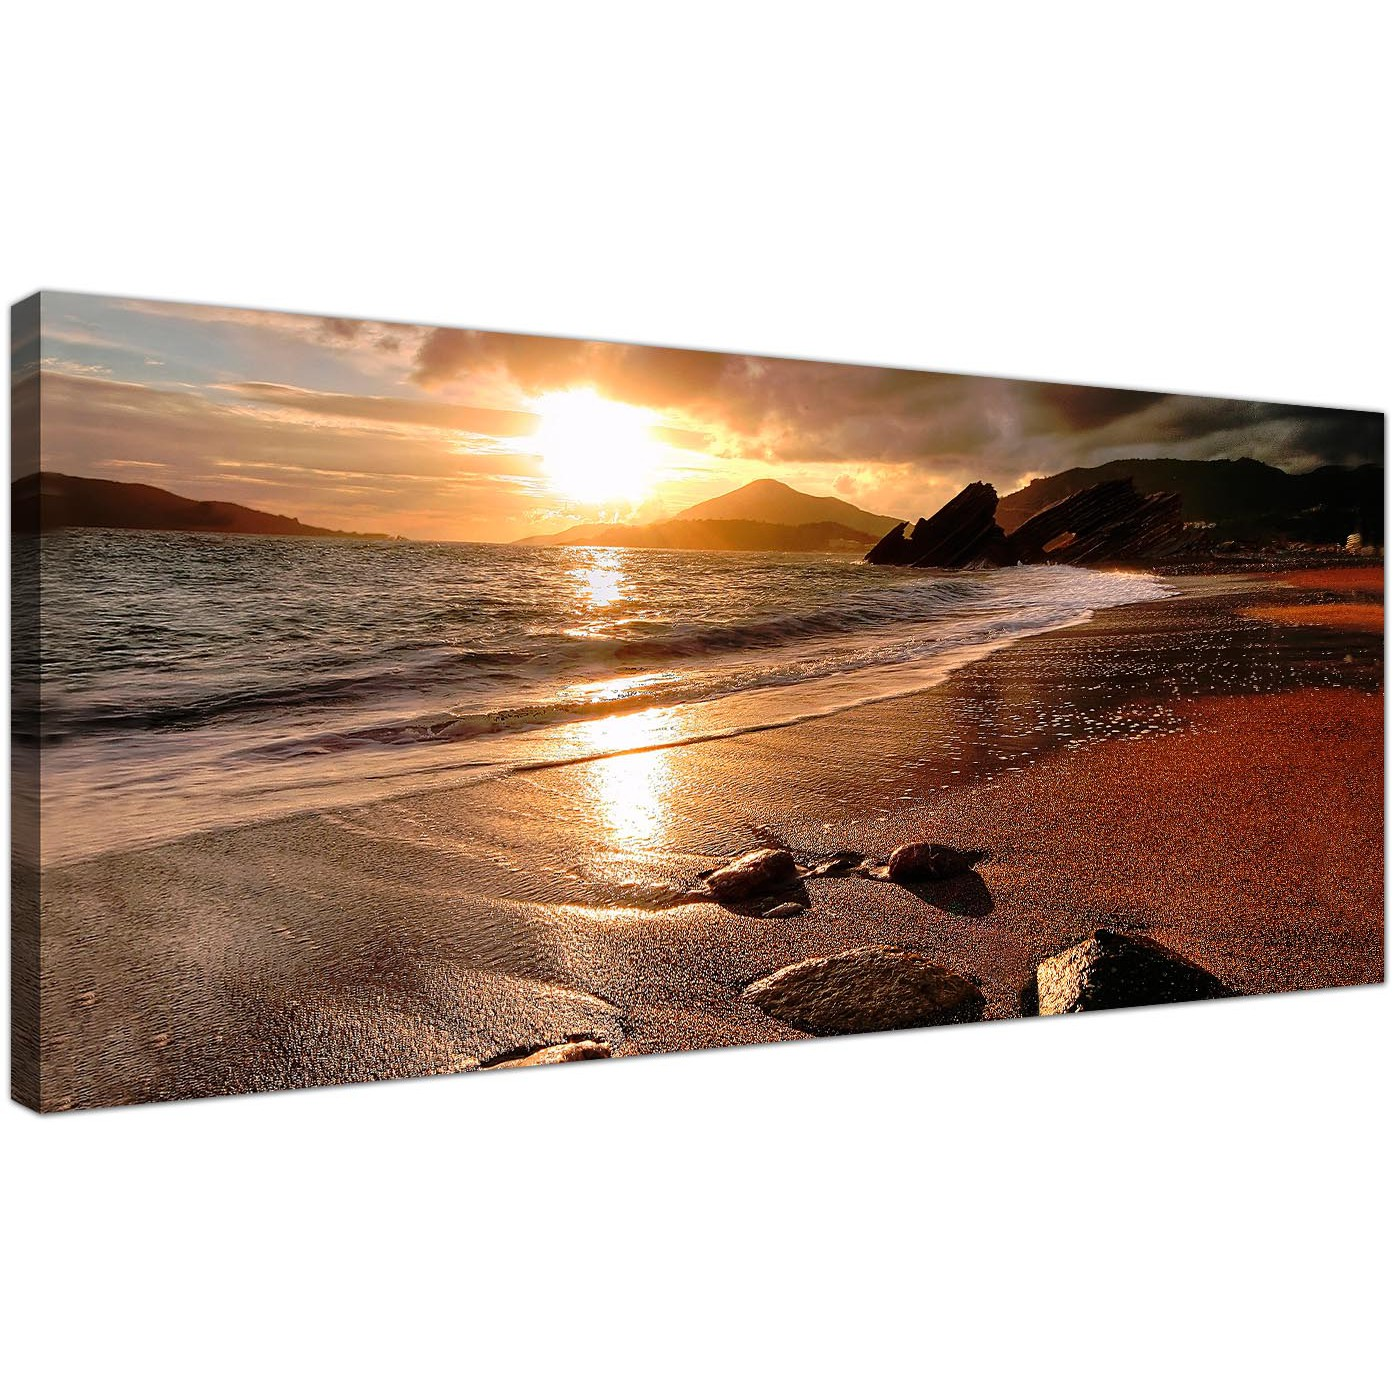 Display gallery item 1 large canvas wall art sepia panoramic nautical landscape 1131 display gallery item 2